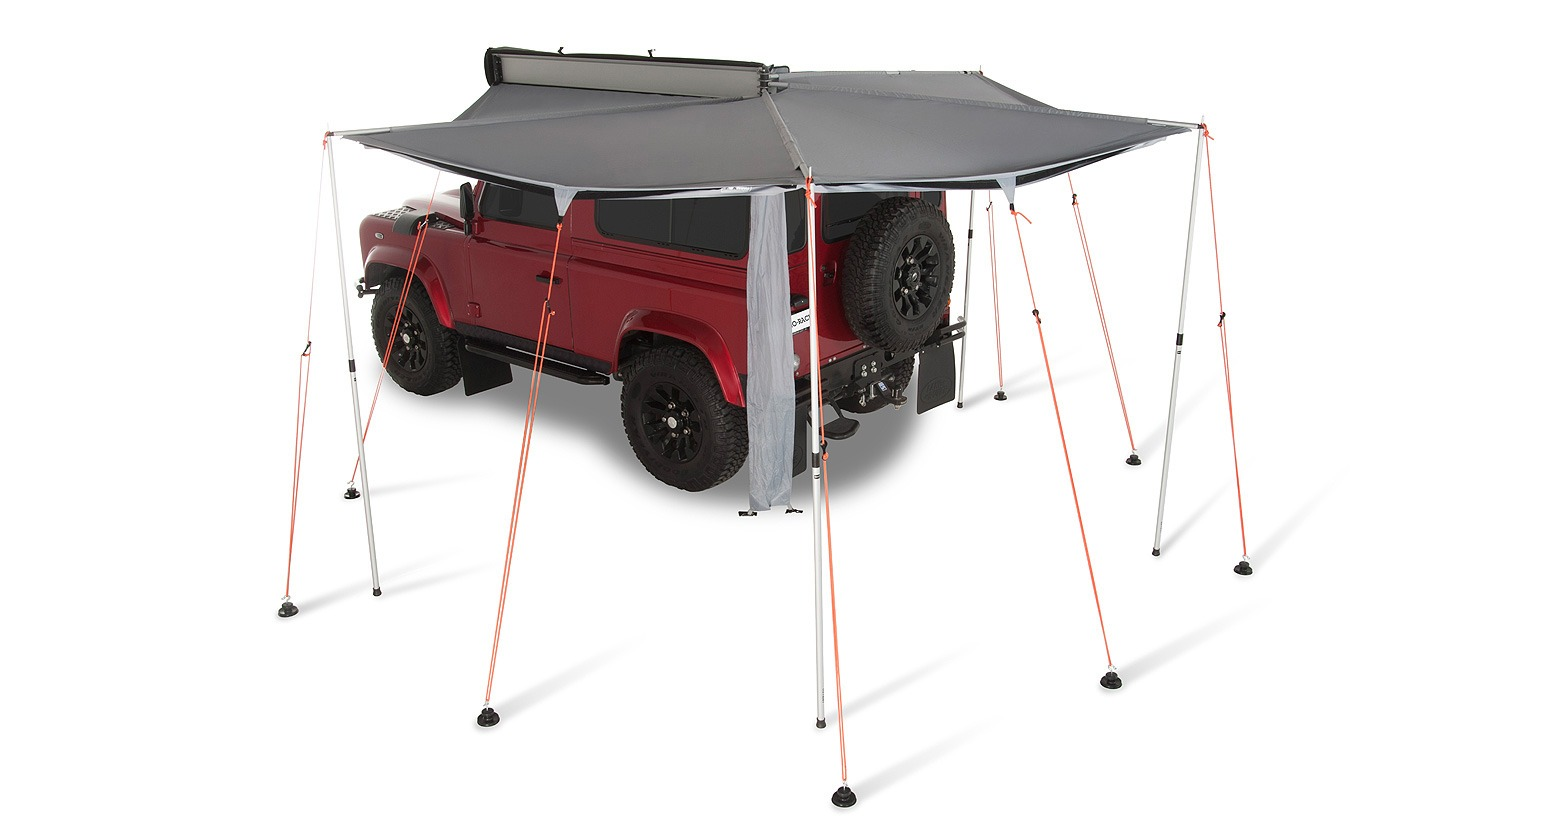 Foxwing Eco 21 Awning